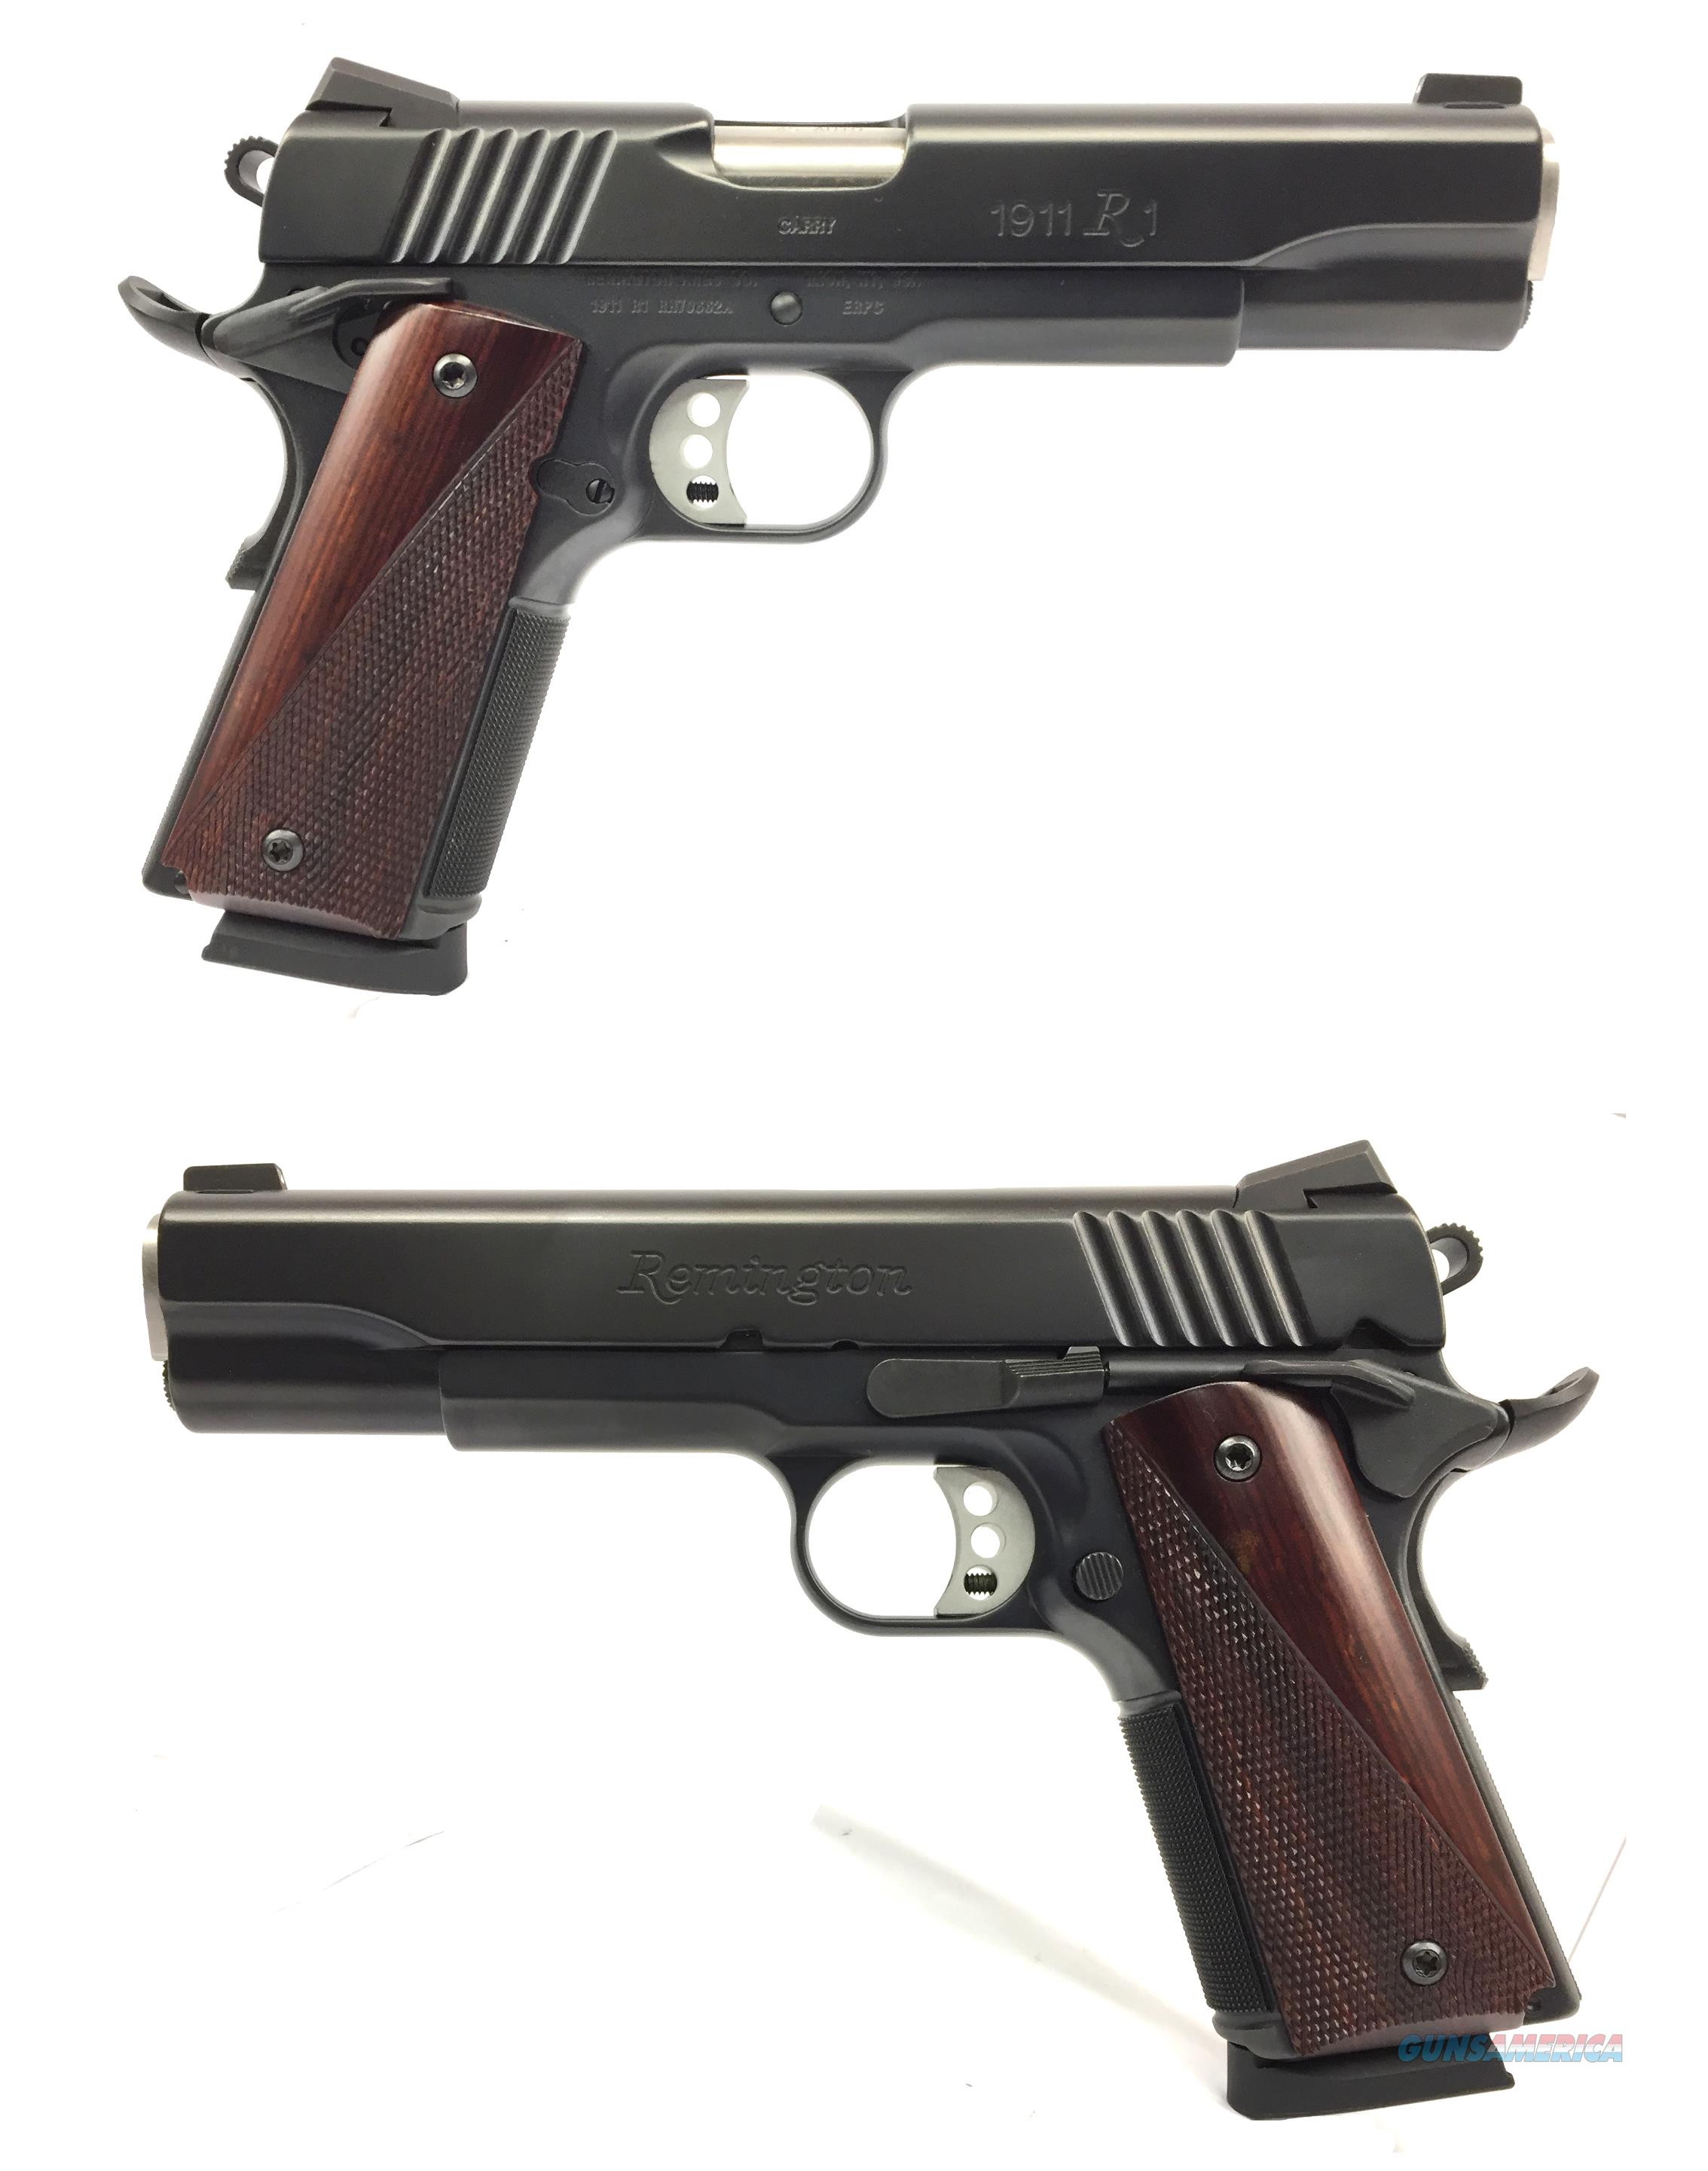 Remington 1911 R1 .45 Carry Model  Guns > Pistols > Remington Pistols - Modern > 1911